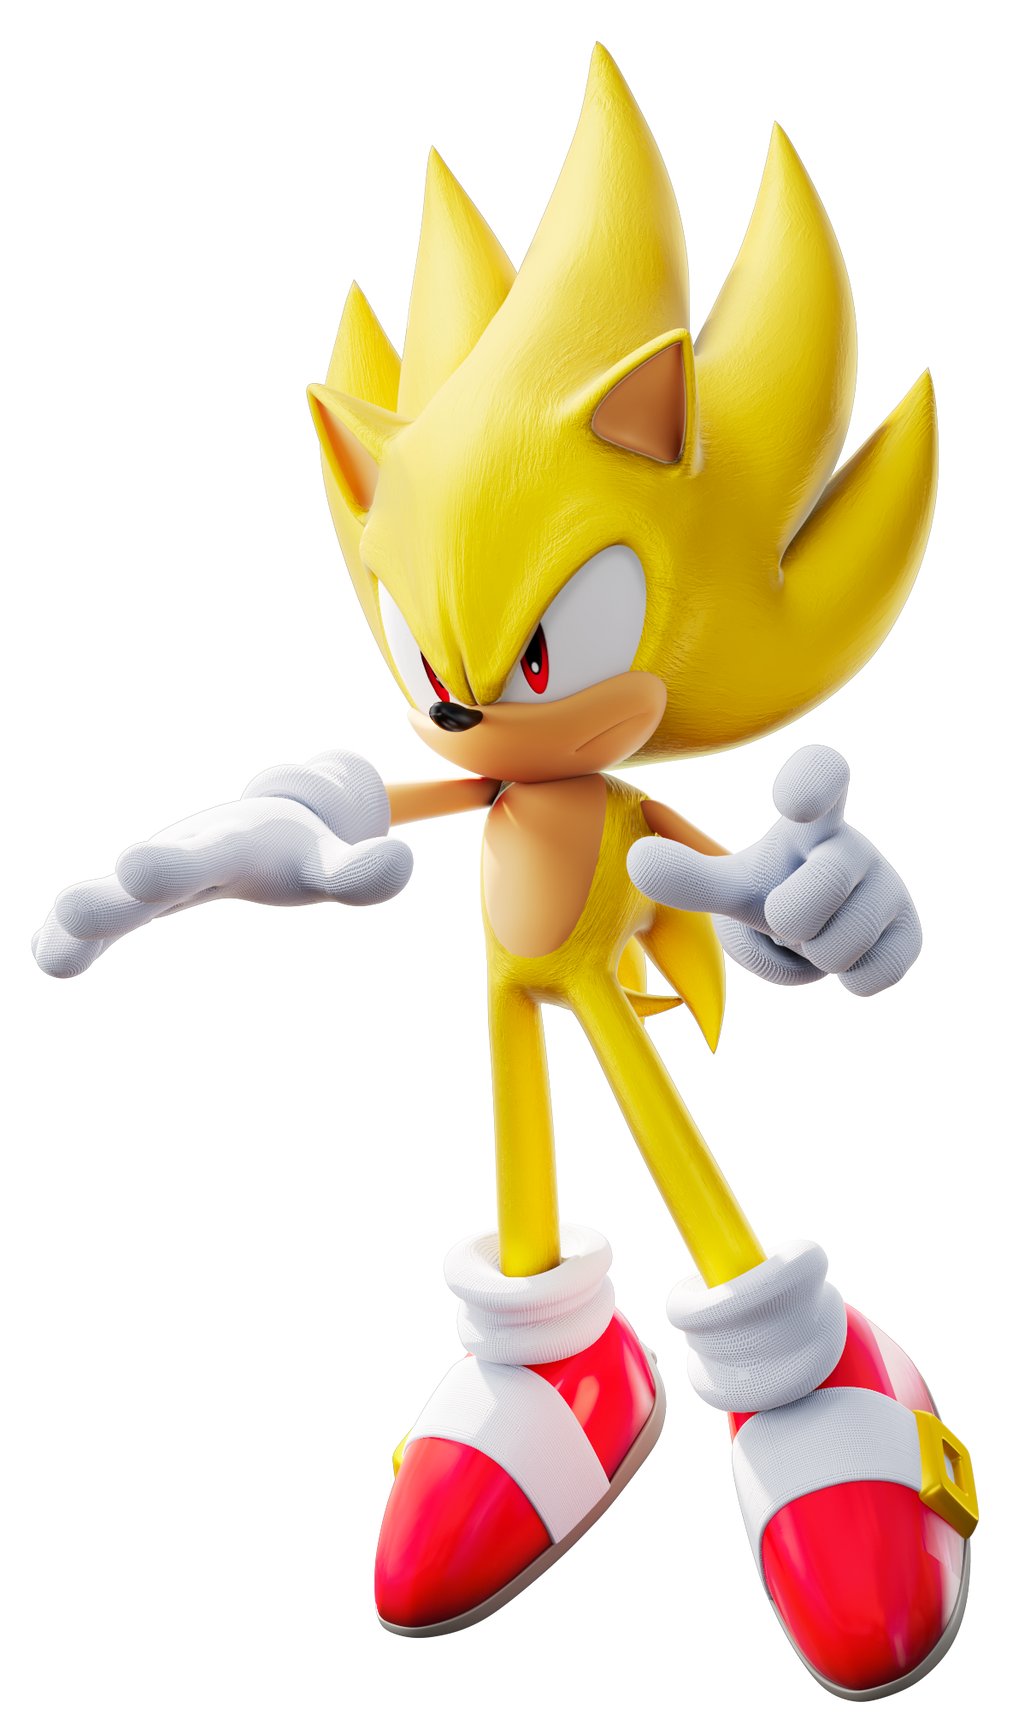 Super Sonic Style No Aura By Tbsf Yt On Deviantart